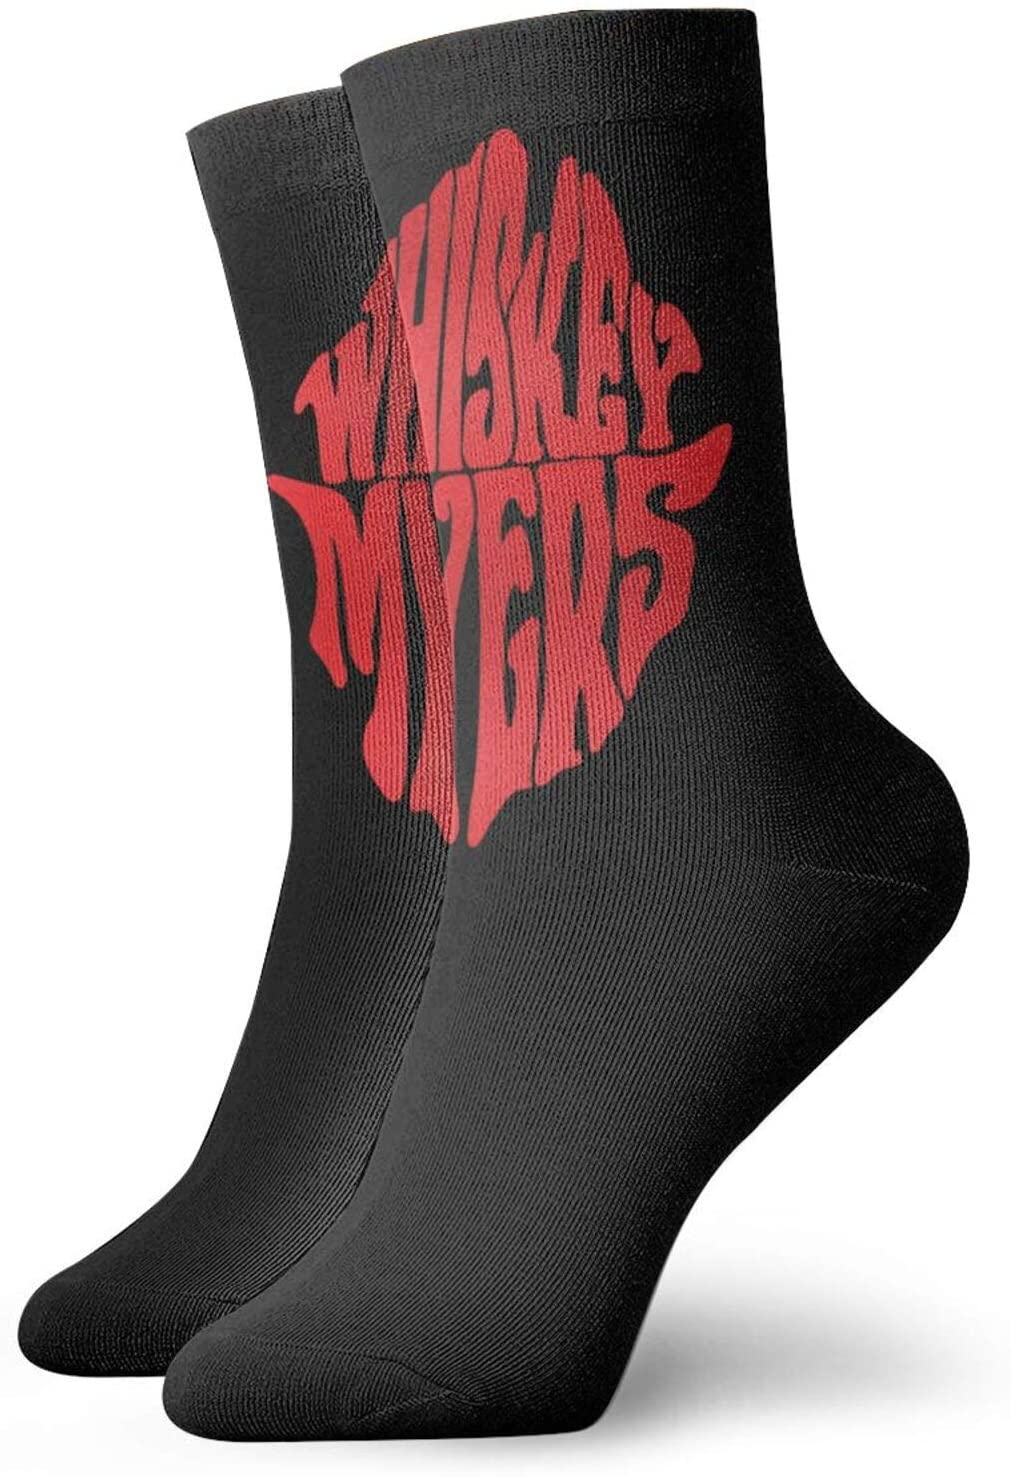 JaoStep Whiskey Myers  Fashion Crew Socks Personalized Unisex Socks White One Size